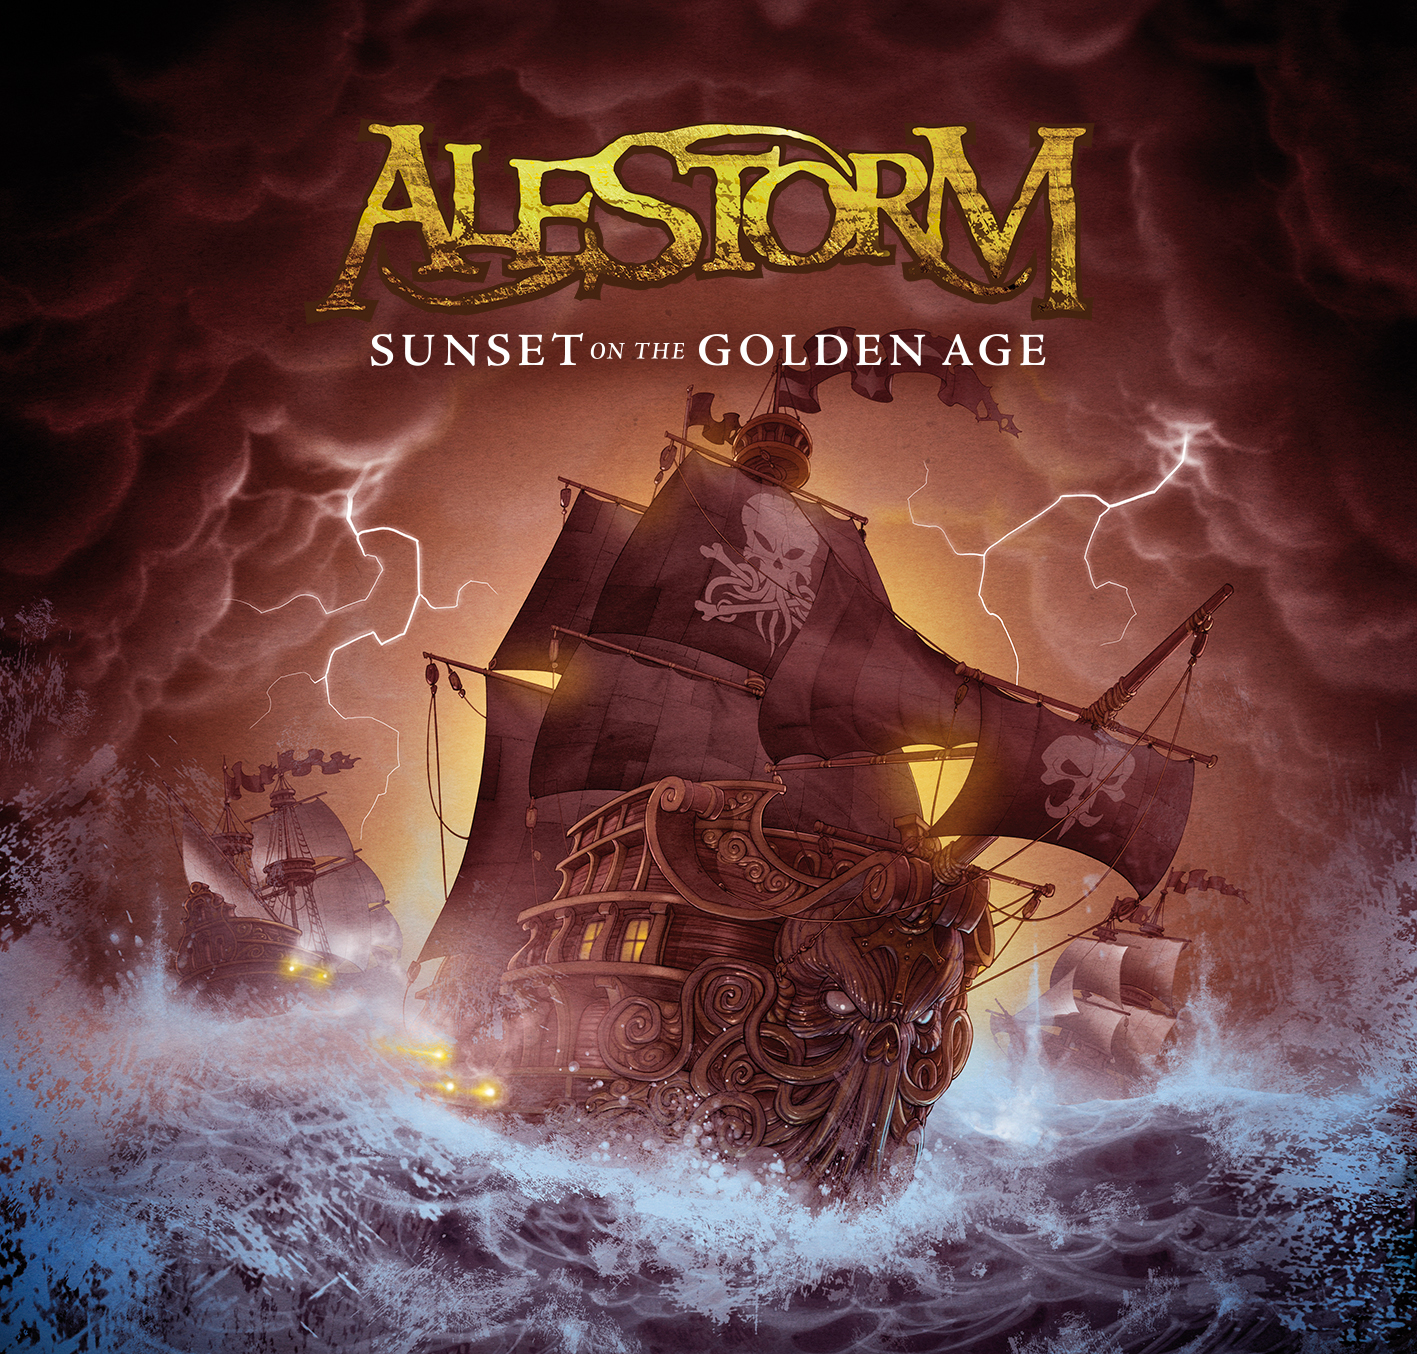 07. Alestorm SUNSET OF THE GOLDEN AGE